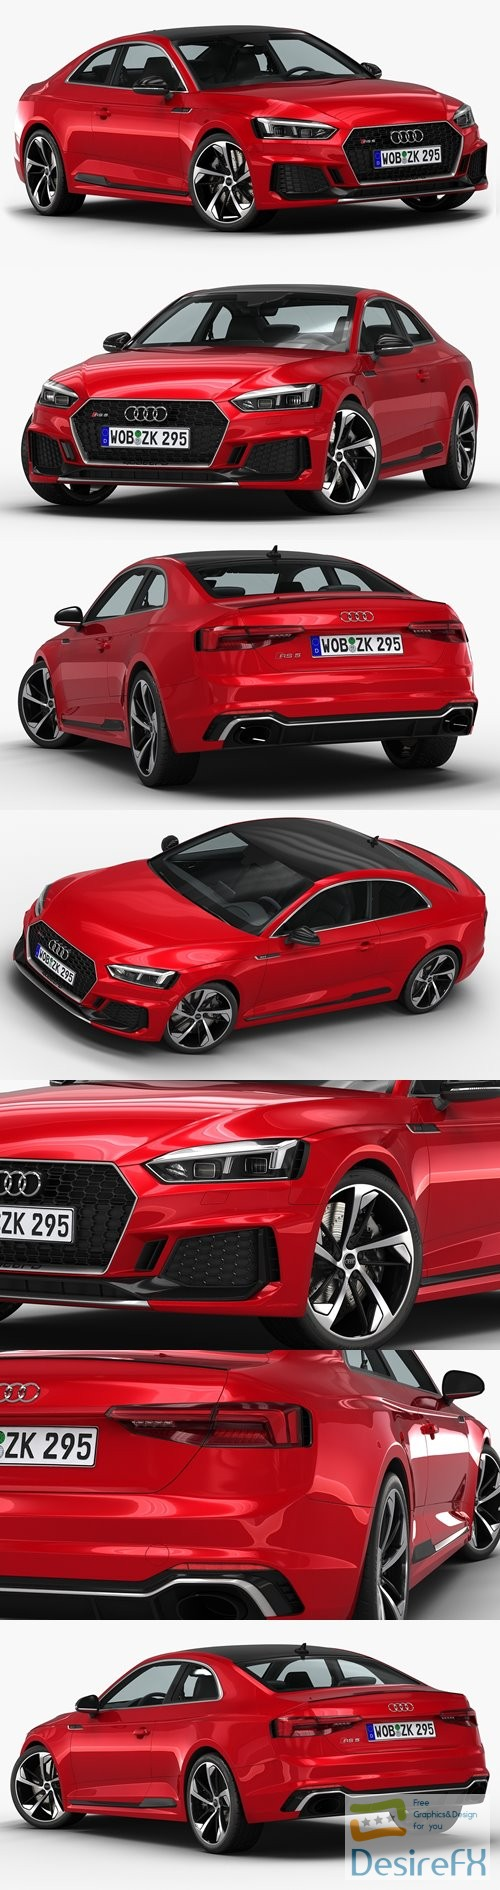 3d-models - Audi RS5 Coupe 2018 3D Model